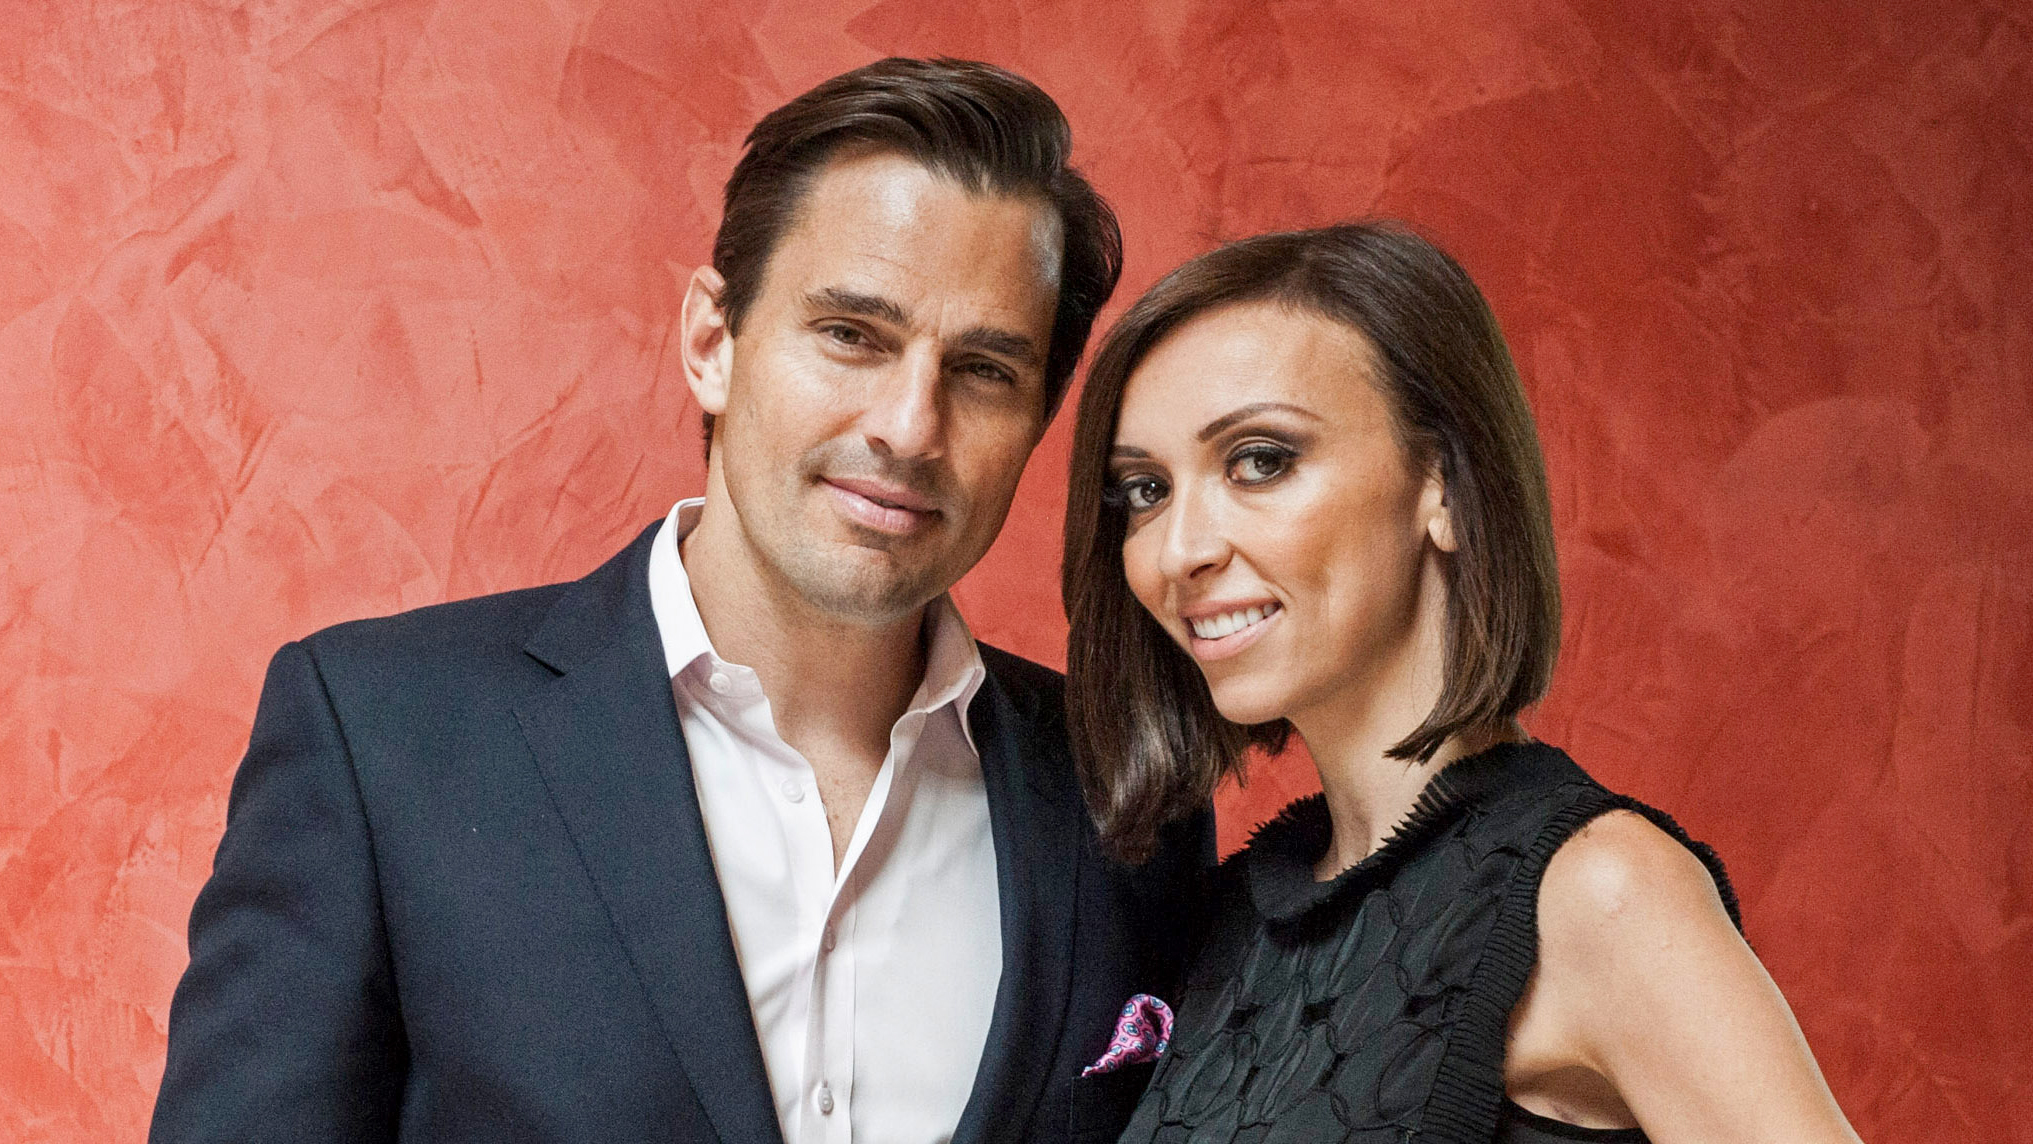 PHOTO: Bill Rancic and Giuliana Rancic pose for a portrait at the 2013 Columbus Day luncheon at the Embassy of Italy on Oct. 14, 2013 in Washington.